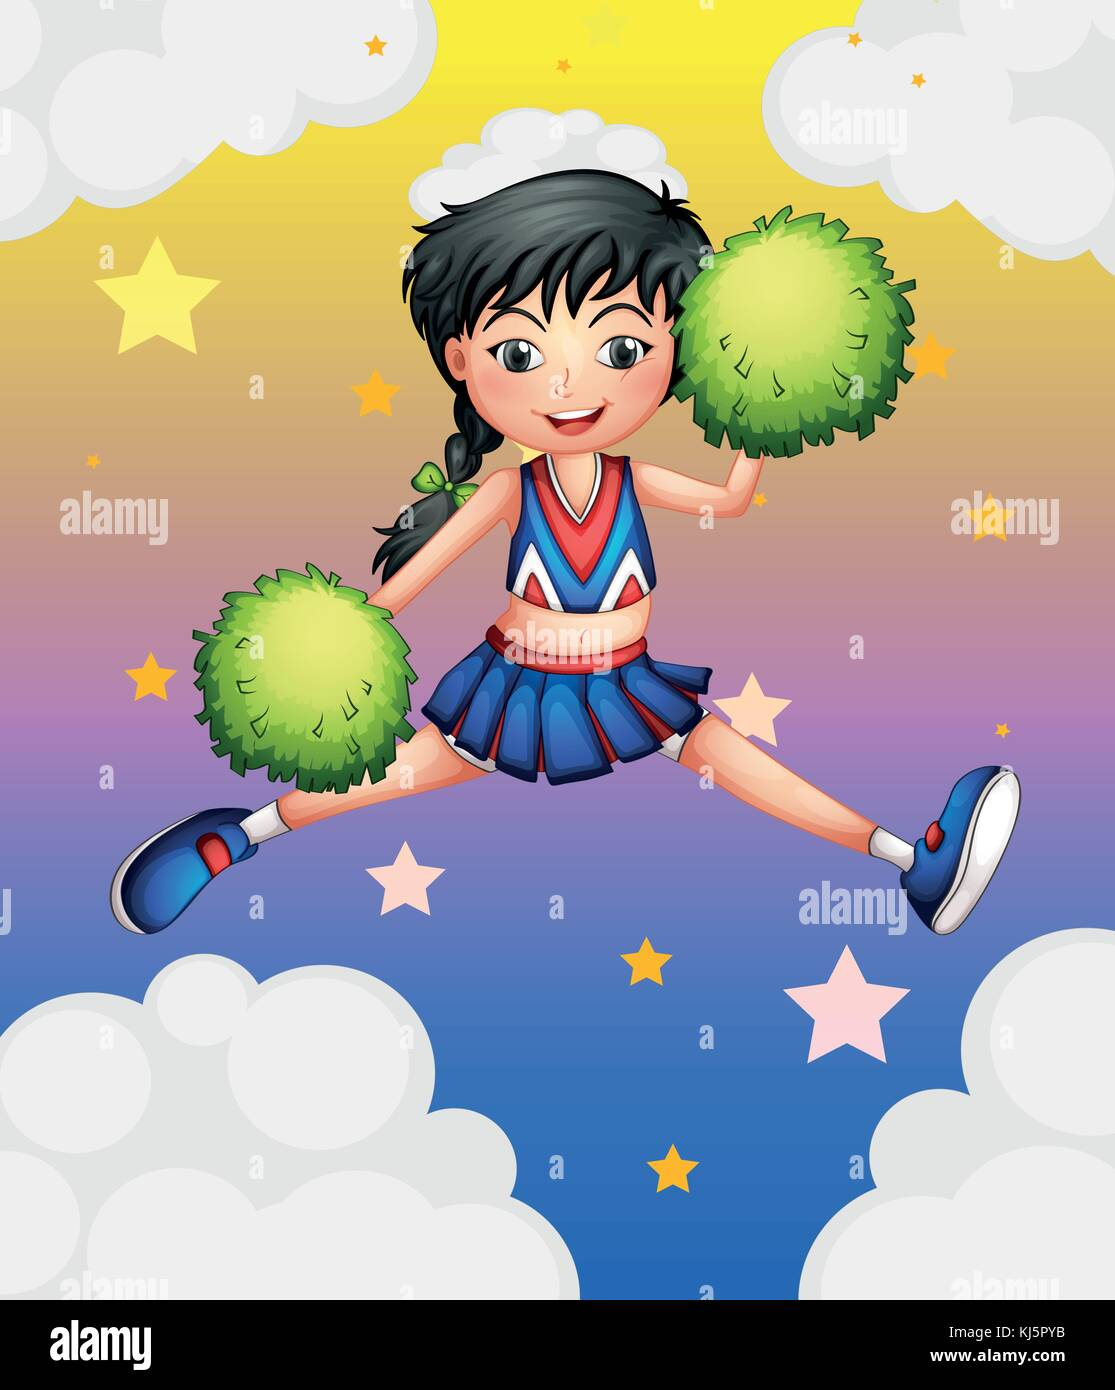 Illustration of a cheerleader jumping with her green pompoms - Stock Vector